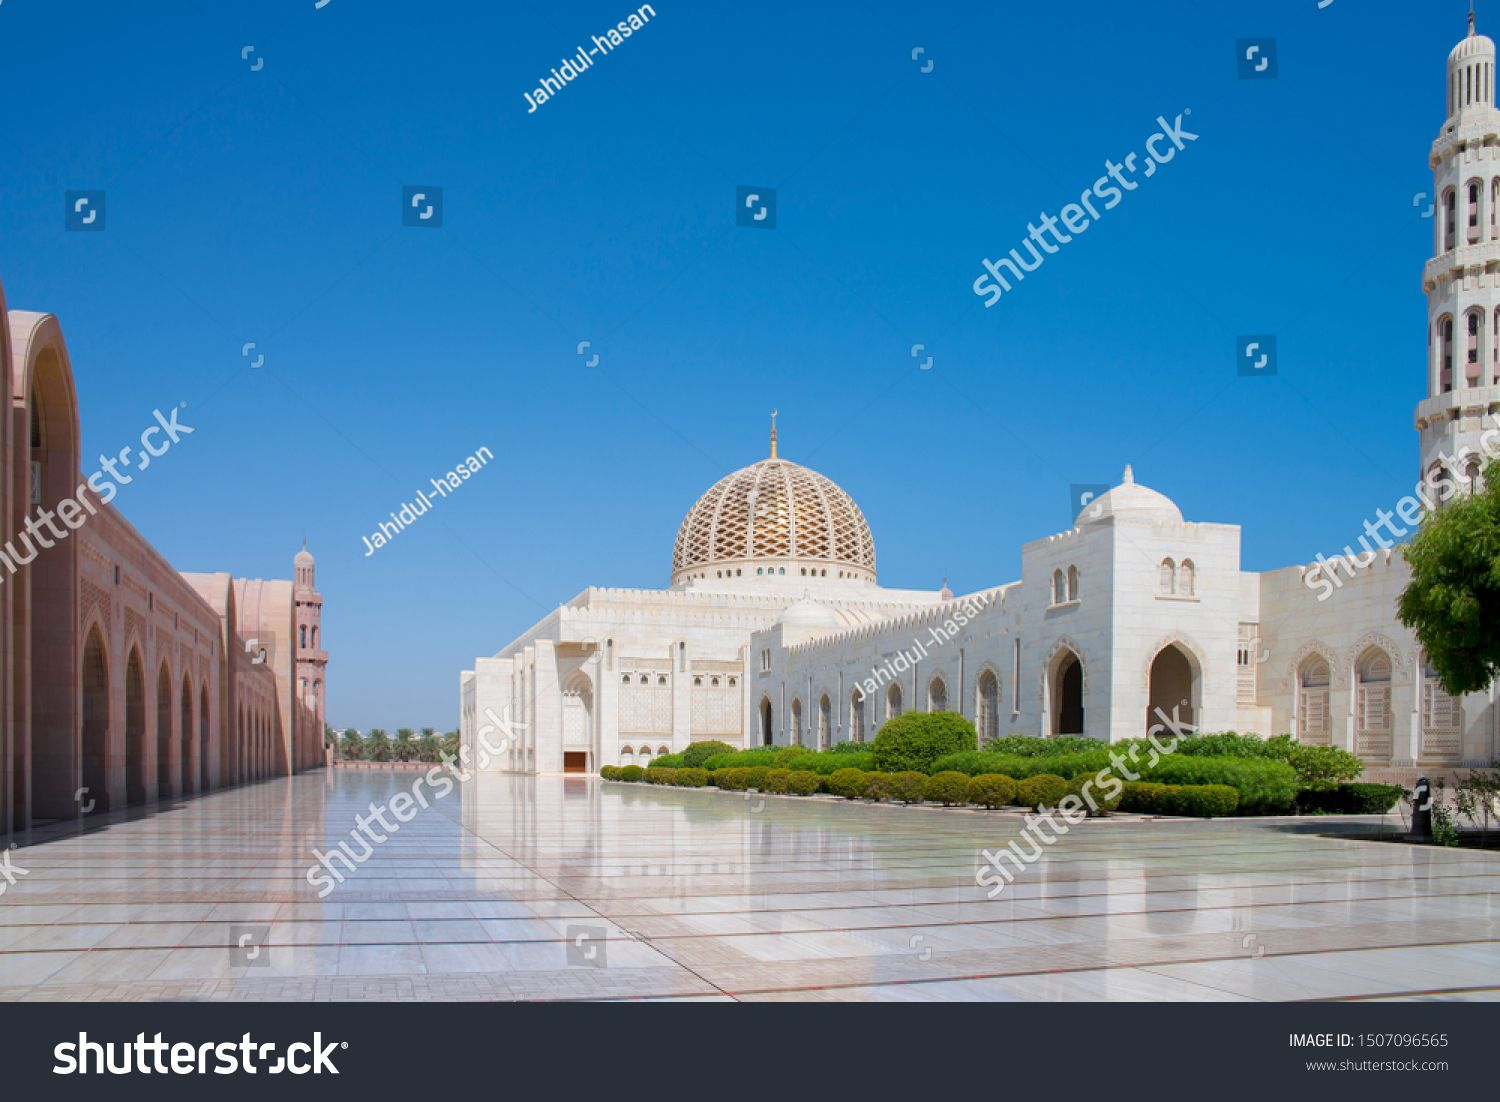 Sultan Qaboos Grand Mosque Is The Main Mosque In The Sultanate Of Oman Located In The Capital City Of Mu Sultan Qaboos Grand Mosque Grand Mosque Sultan Qaboos